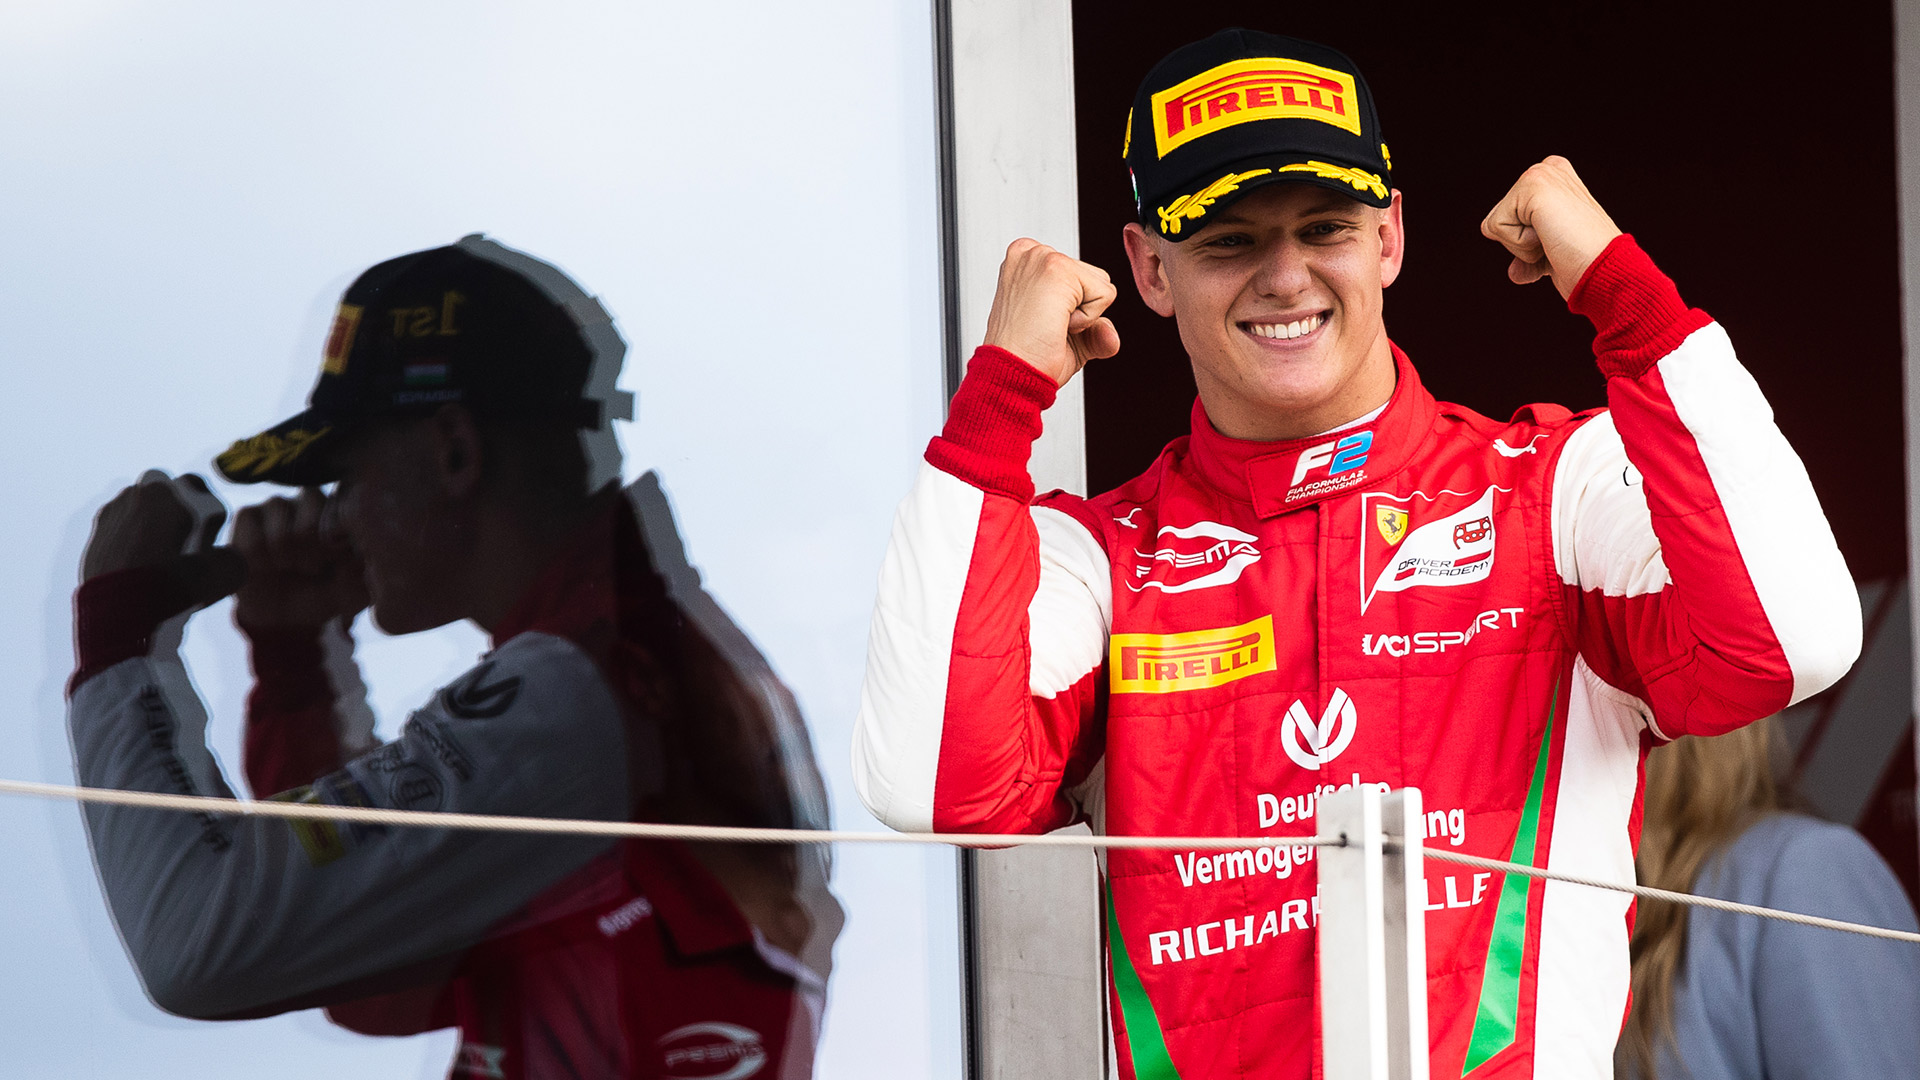 Mick Schumacher On Racing Racing Under Another Name His F1 Prospects And Becoming A Complete Driver Formula 1